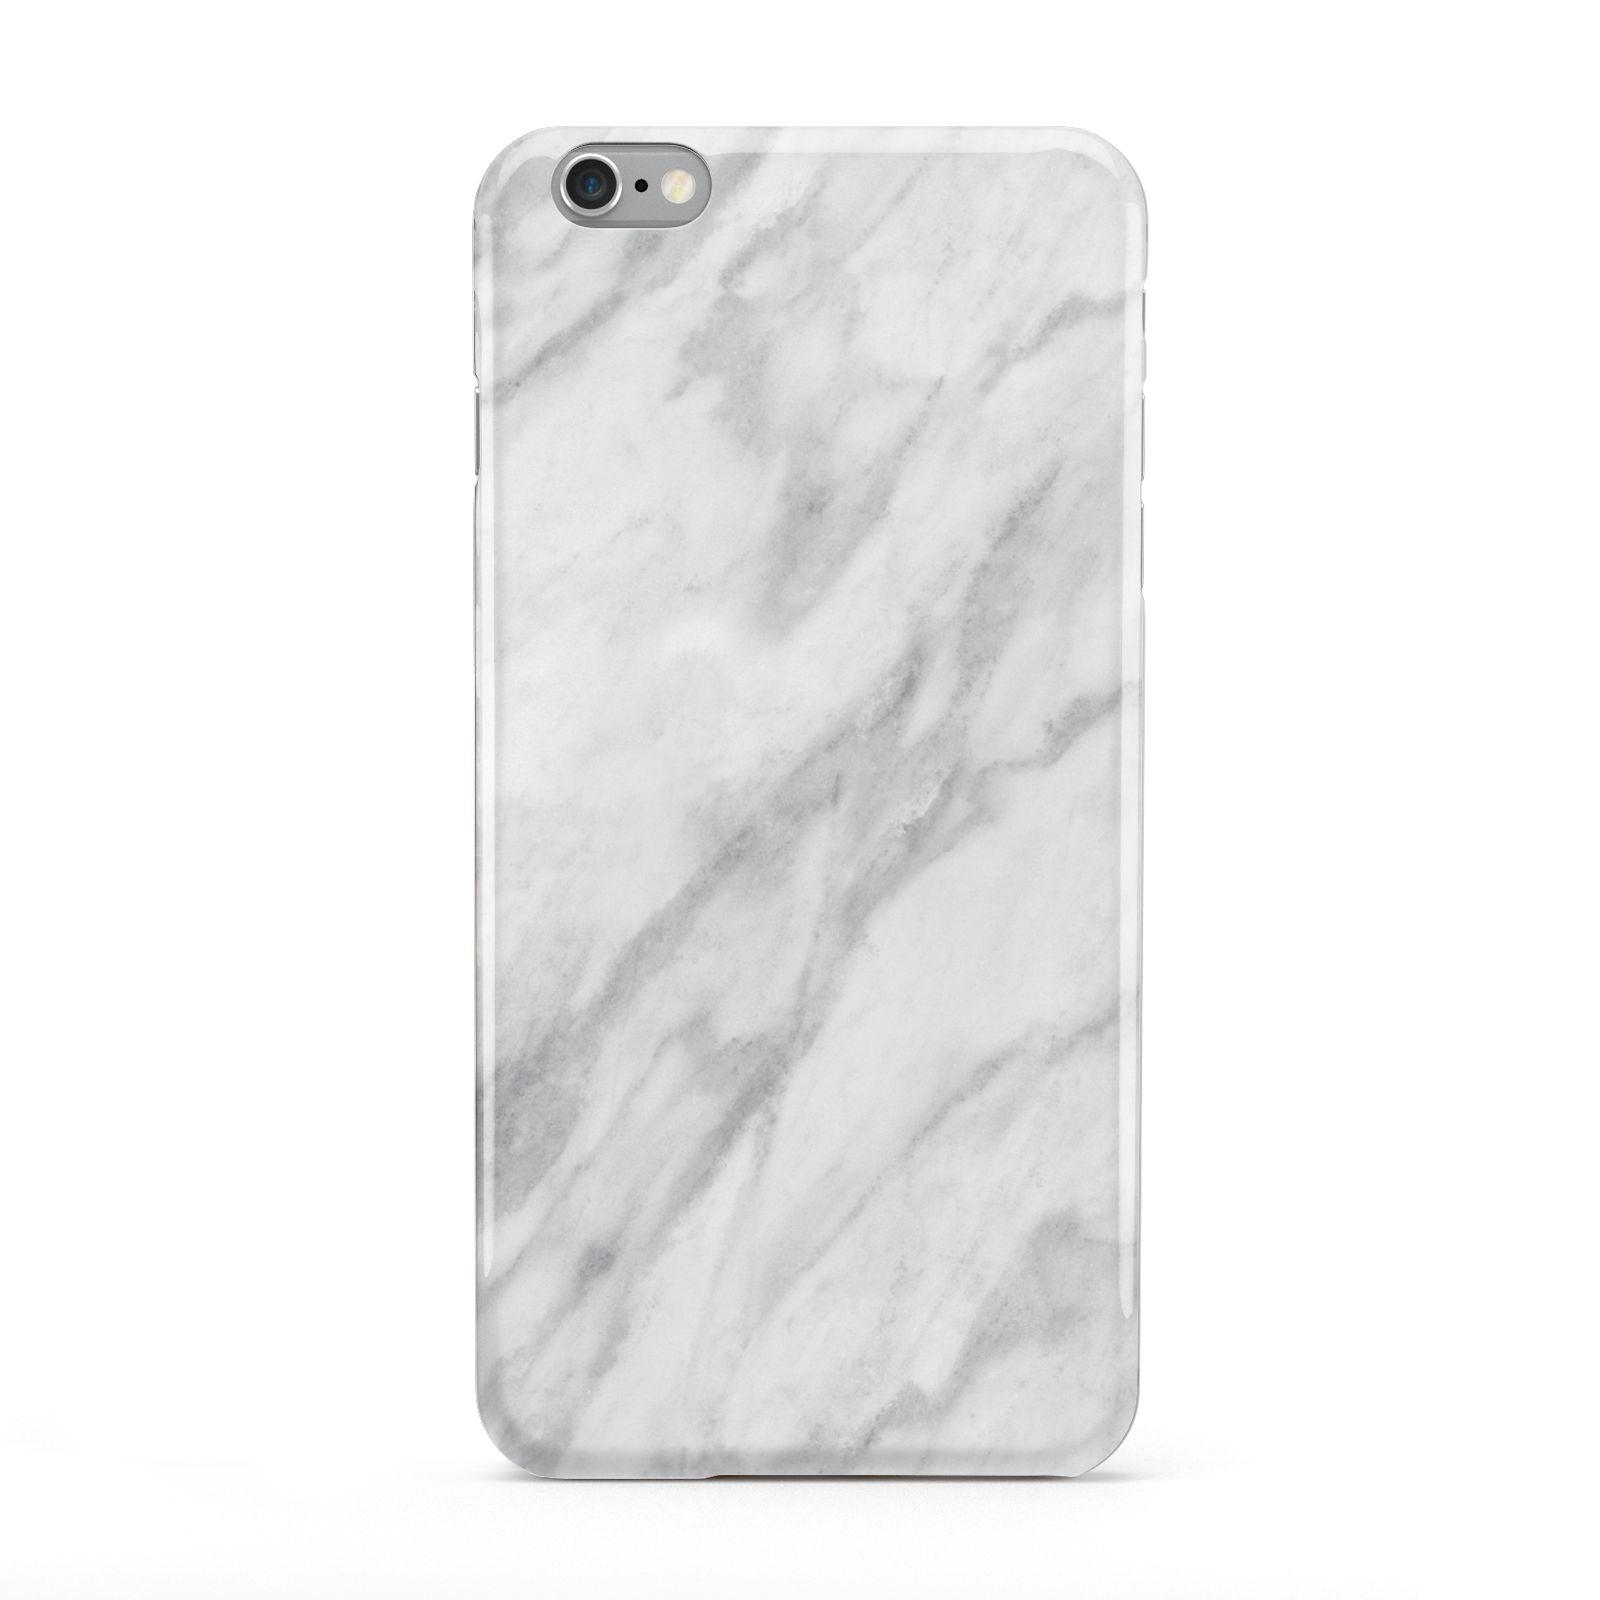 Faux Marble Effect Italian Apple iPhone 6 Plus Case